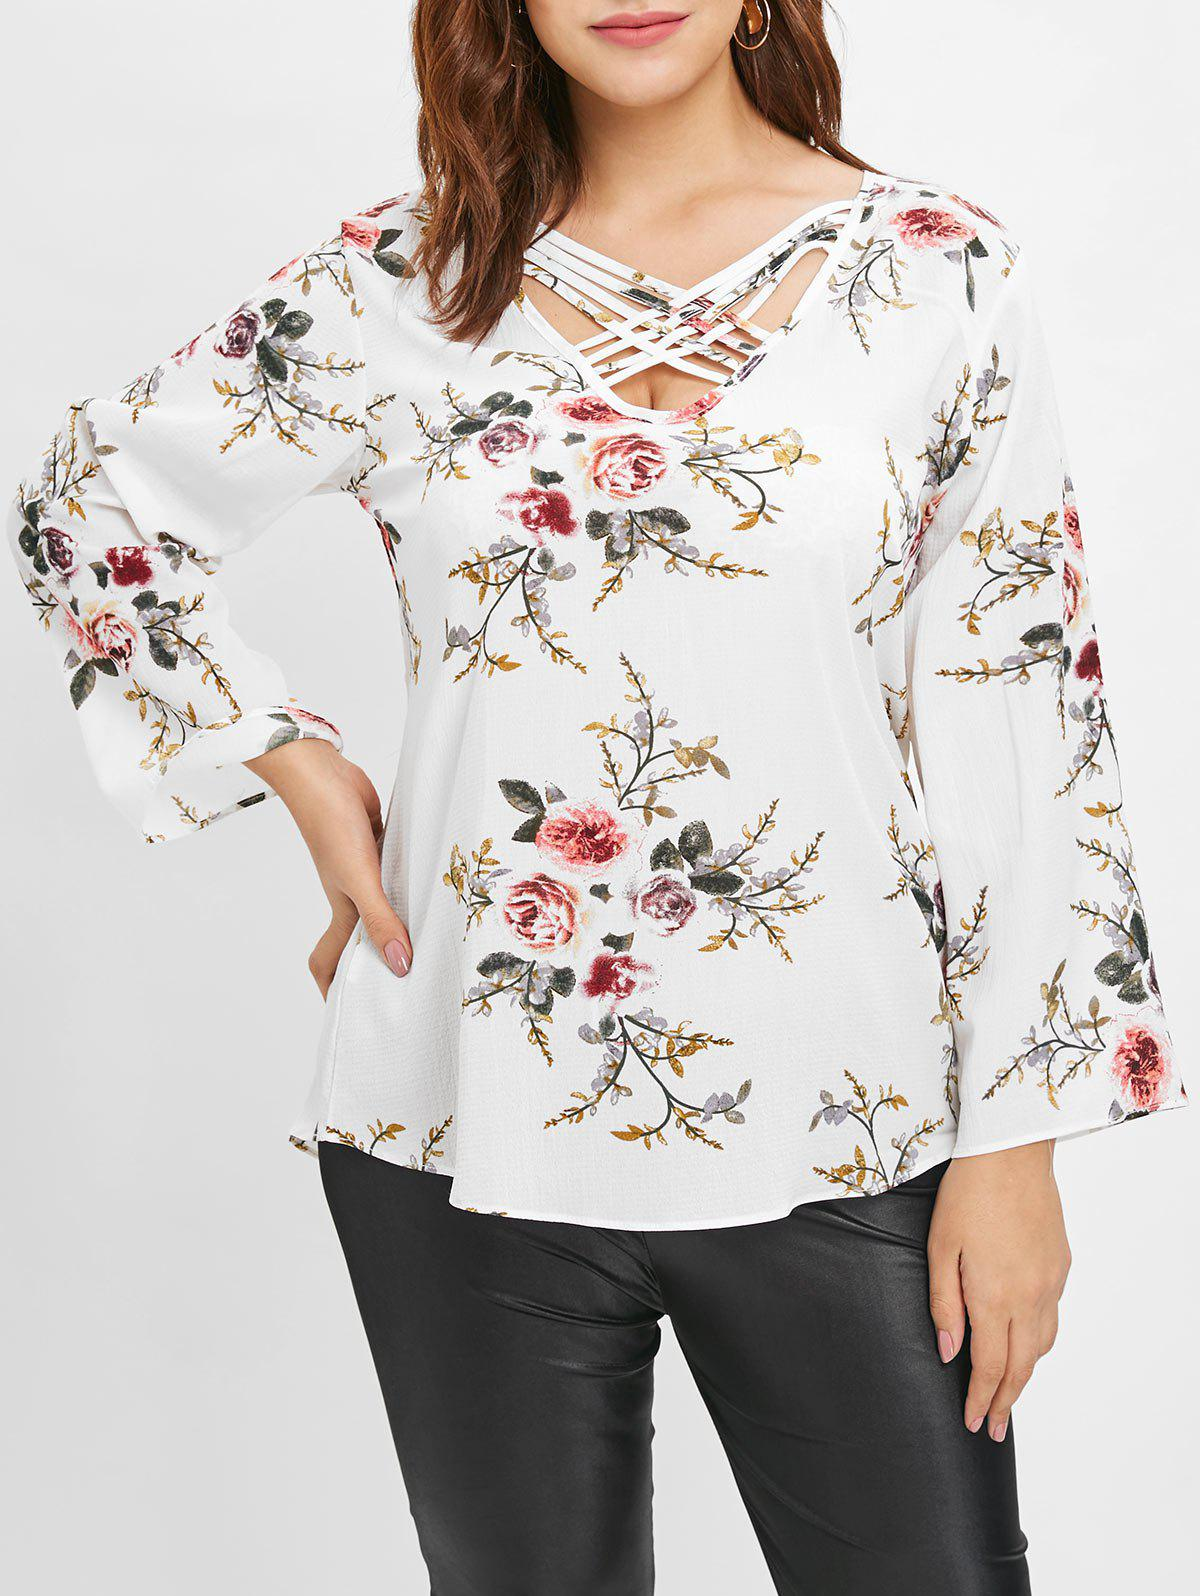 2019 Plus Size Floral Blouse With Criss Cross Rosegal